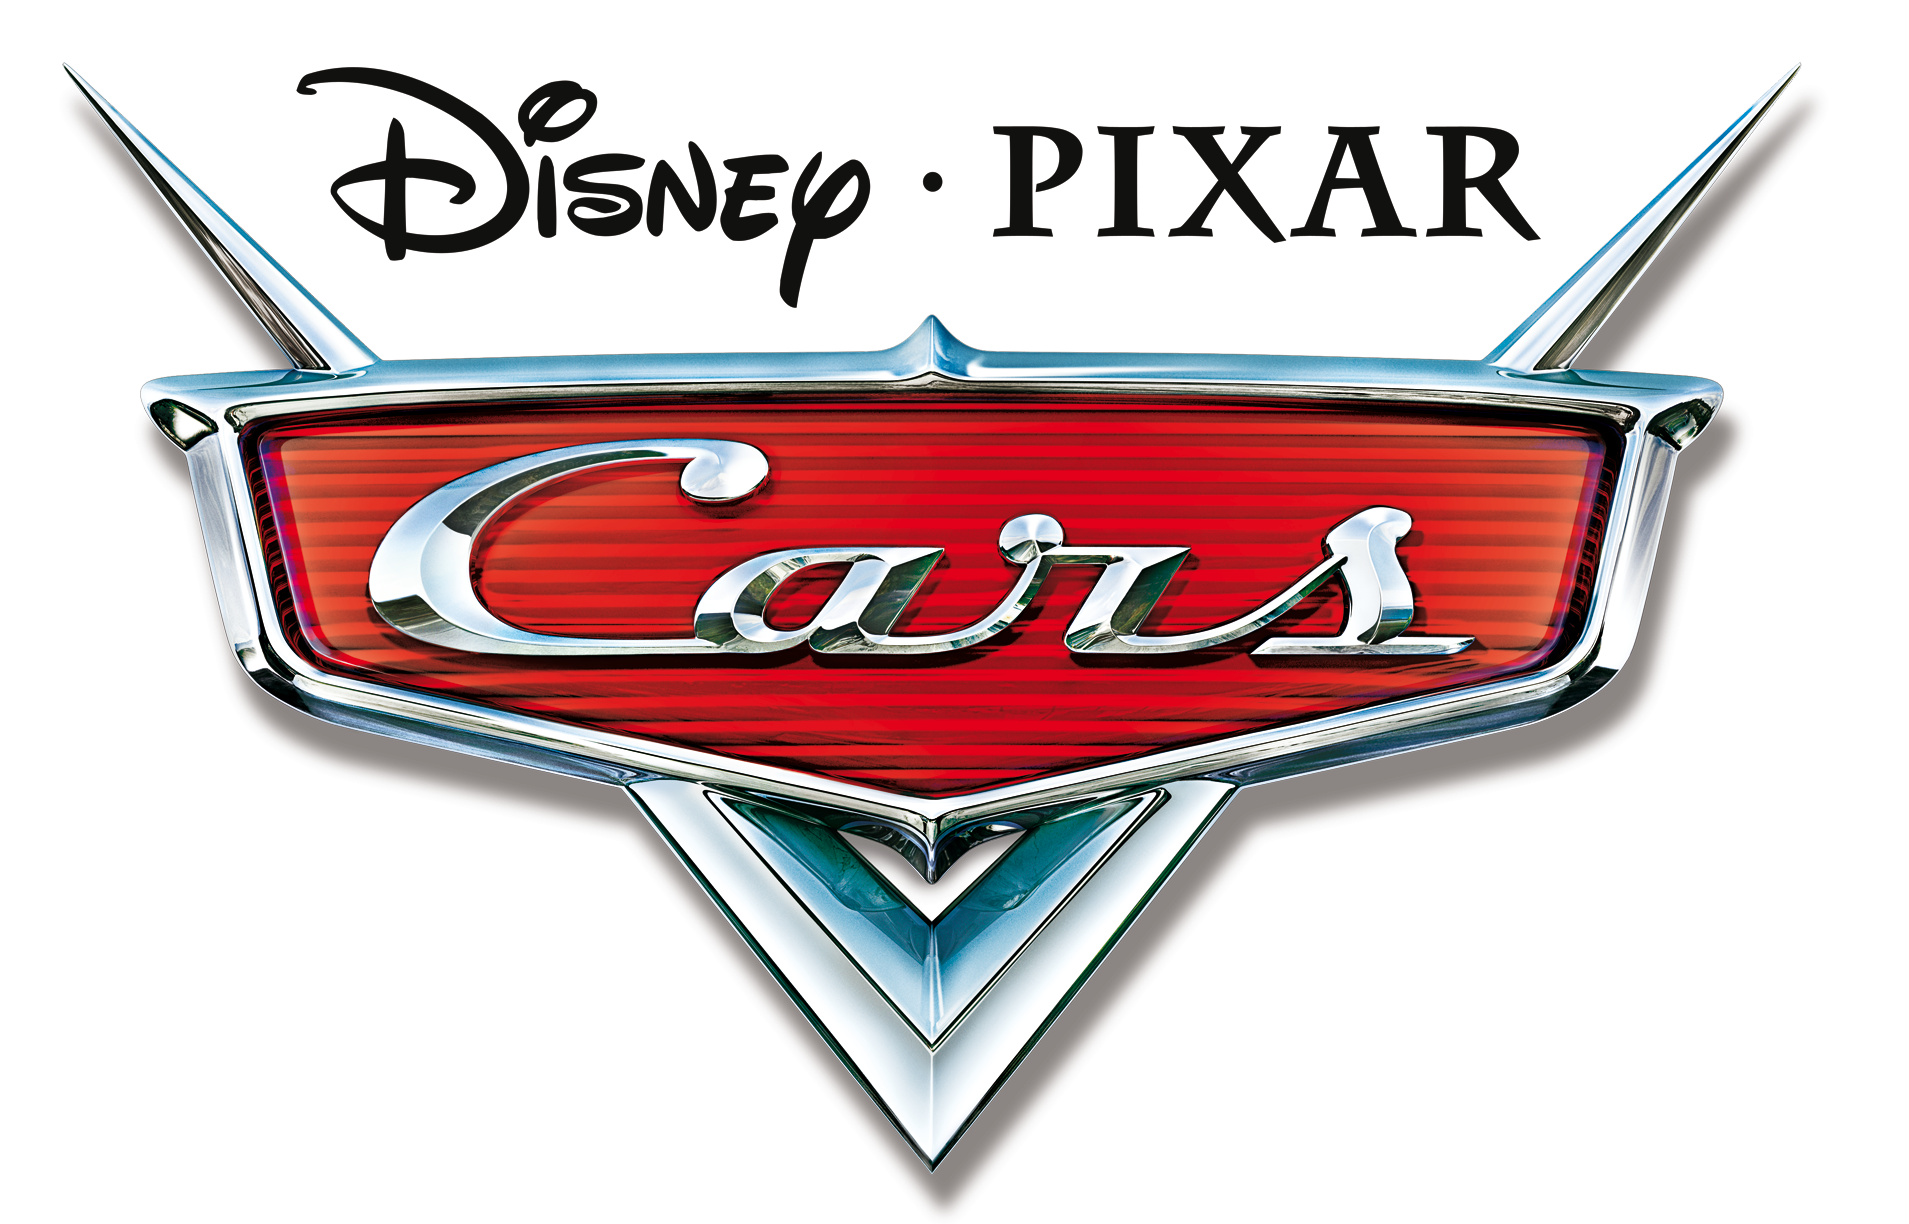 Cars Disney Pixar